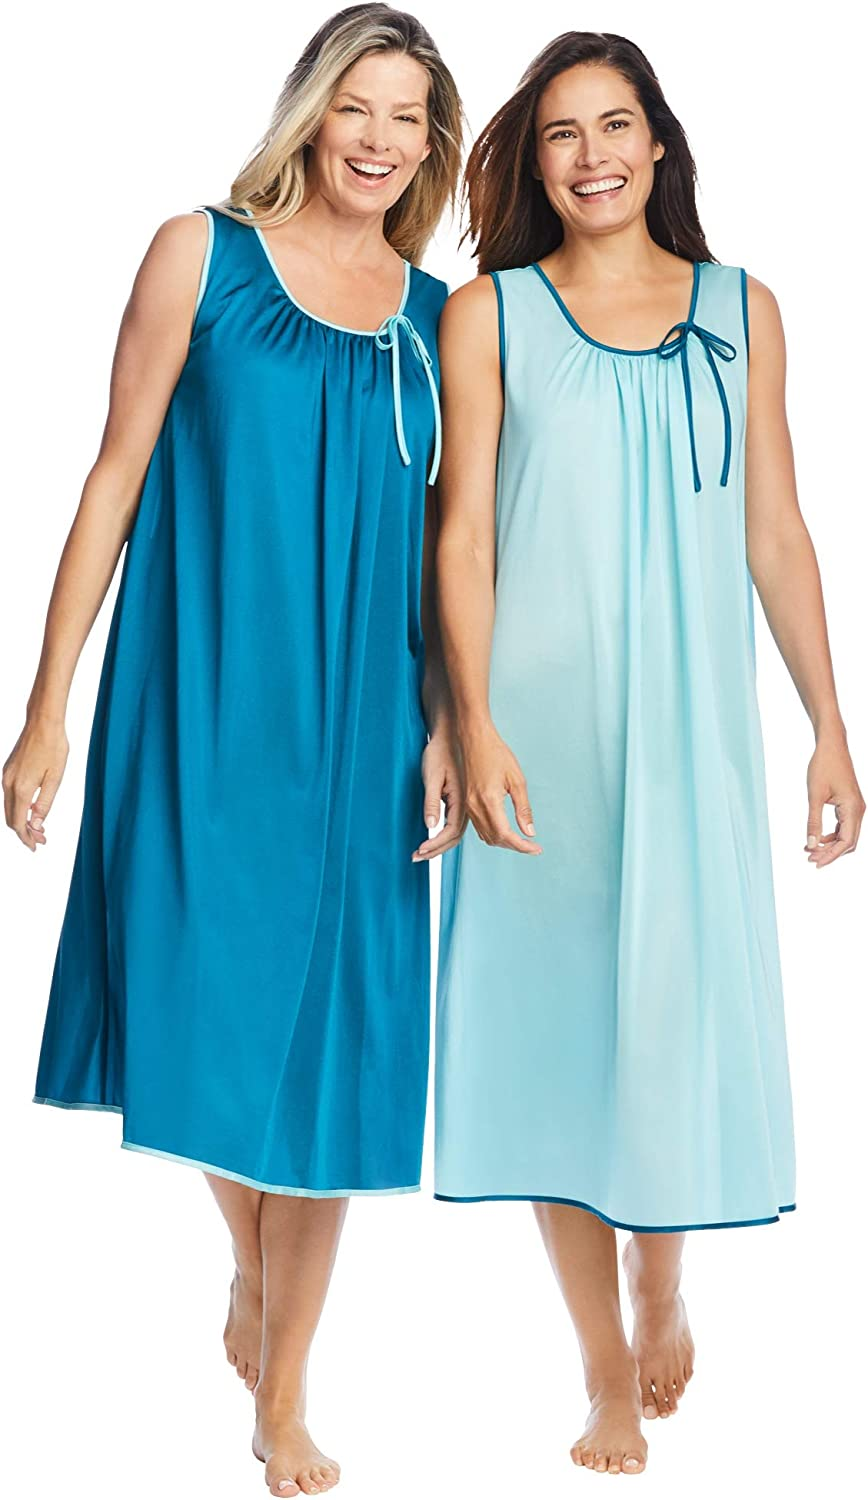 Only Necessities Women's Plus Size 2-Pack Sleeveless Nightgown